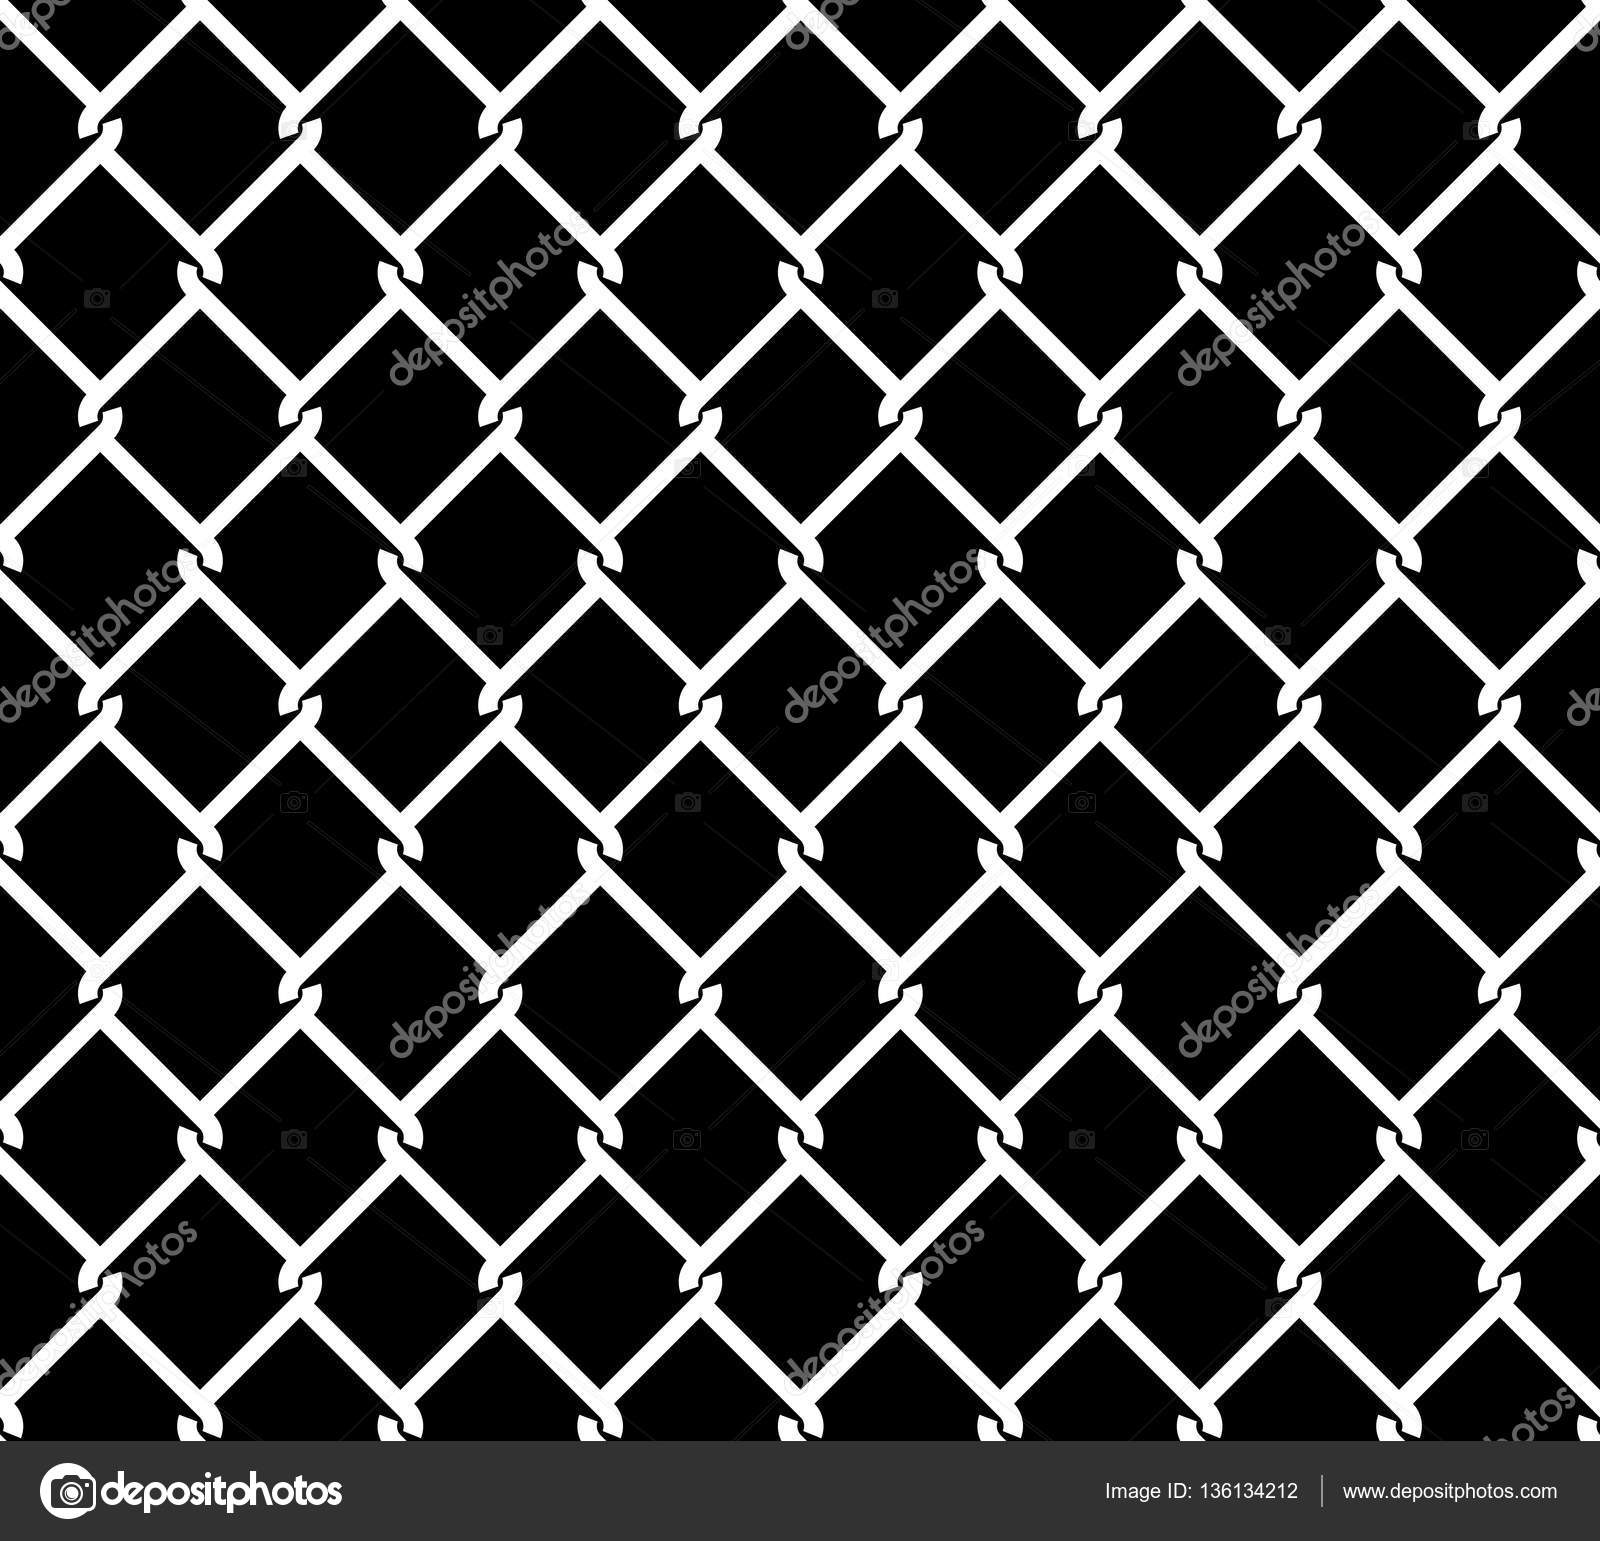 Metallic Wired Fence Seamless Texture Overlay — Stock Vector ...